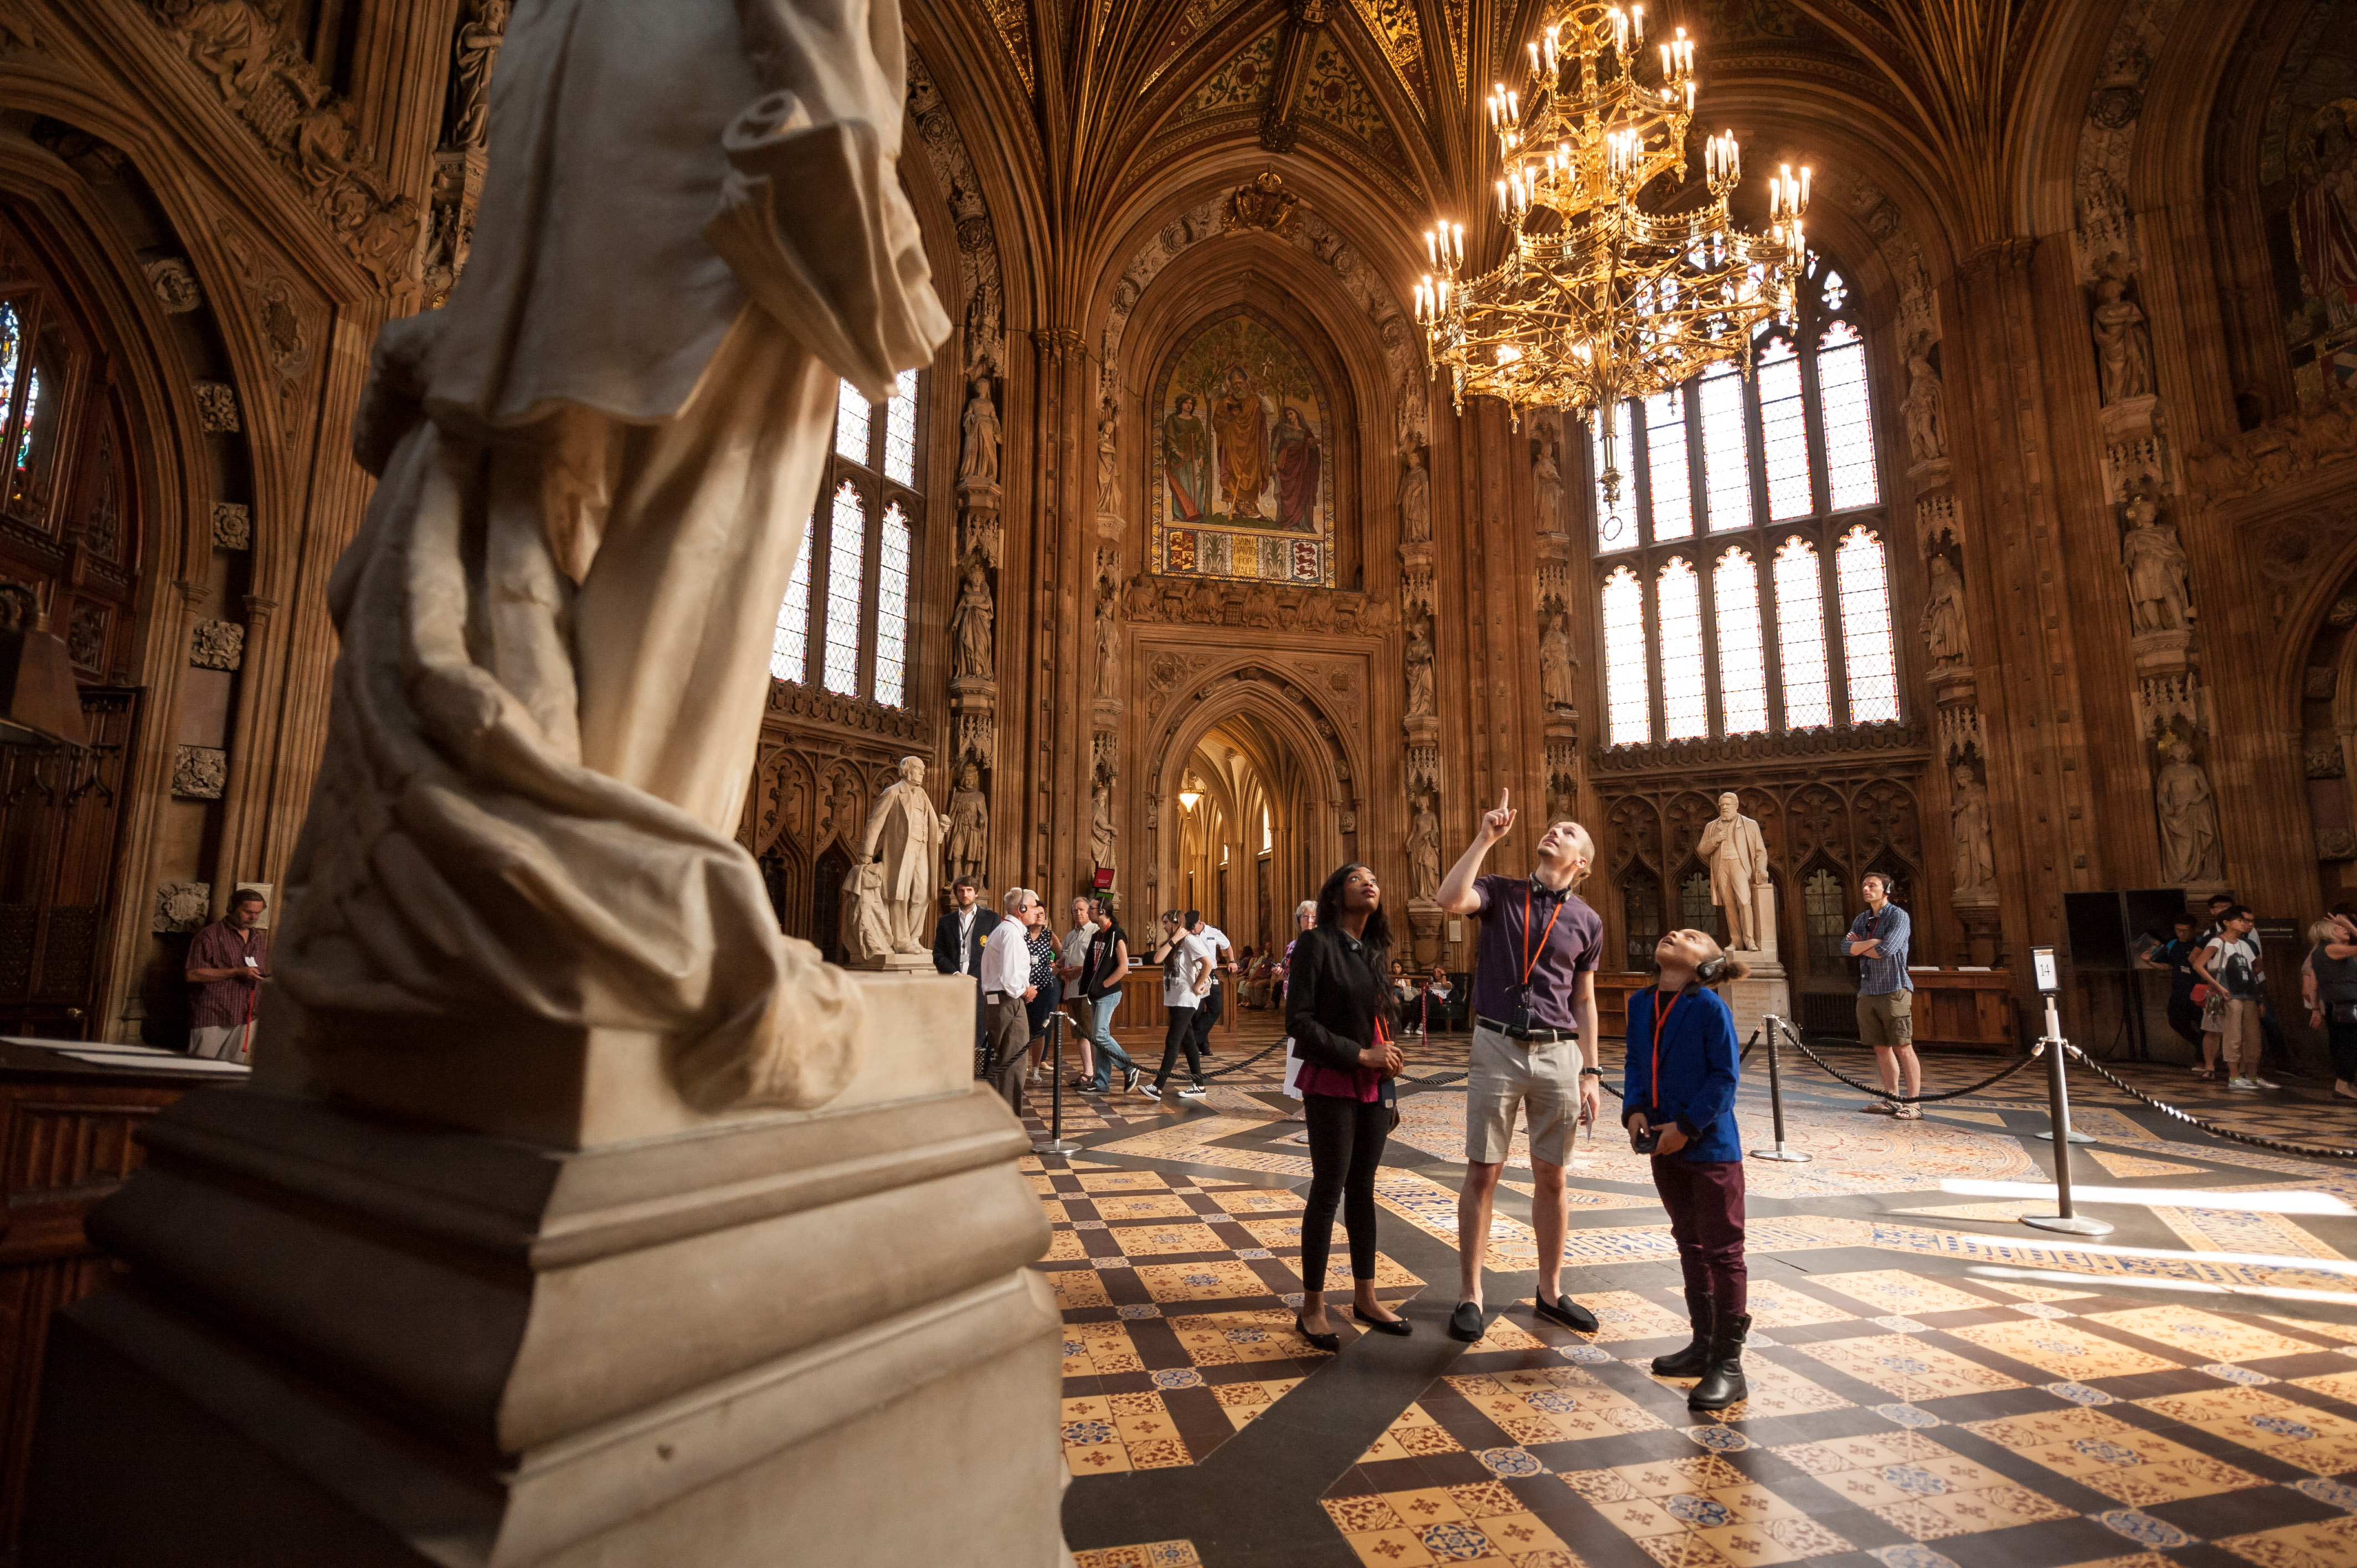 Multimedia tour of the Palace of Westminster